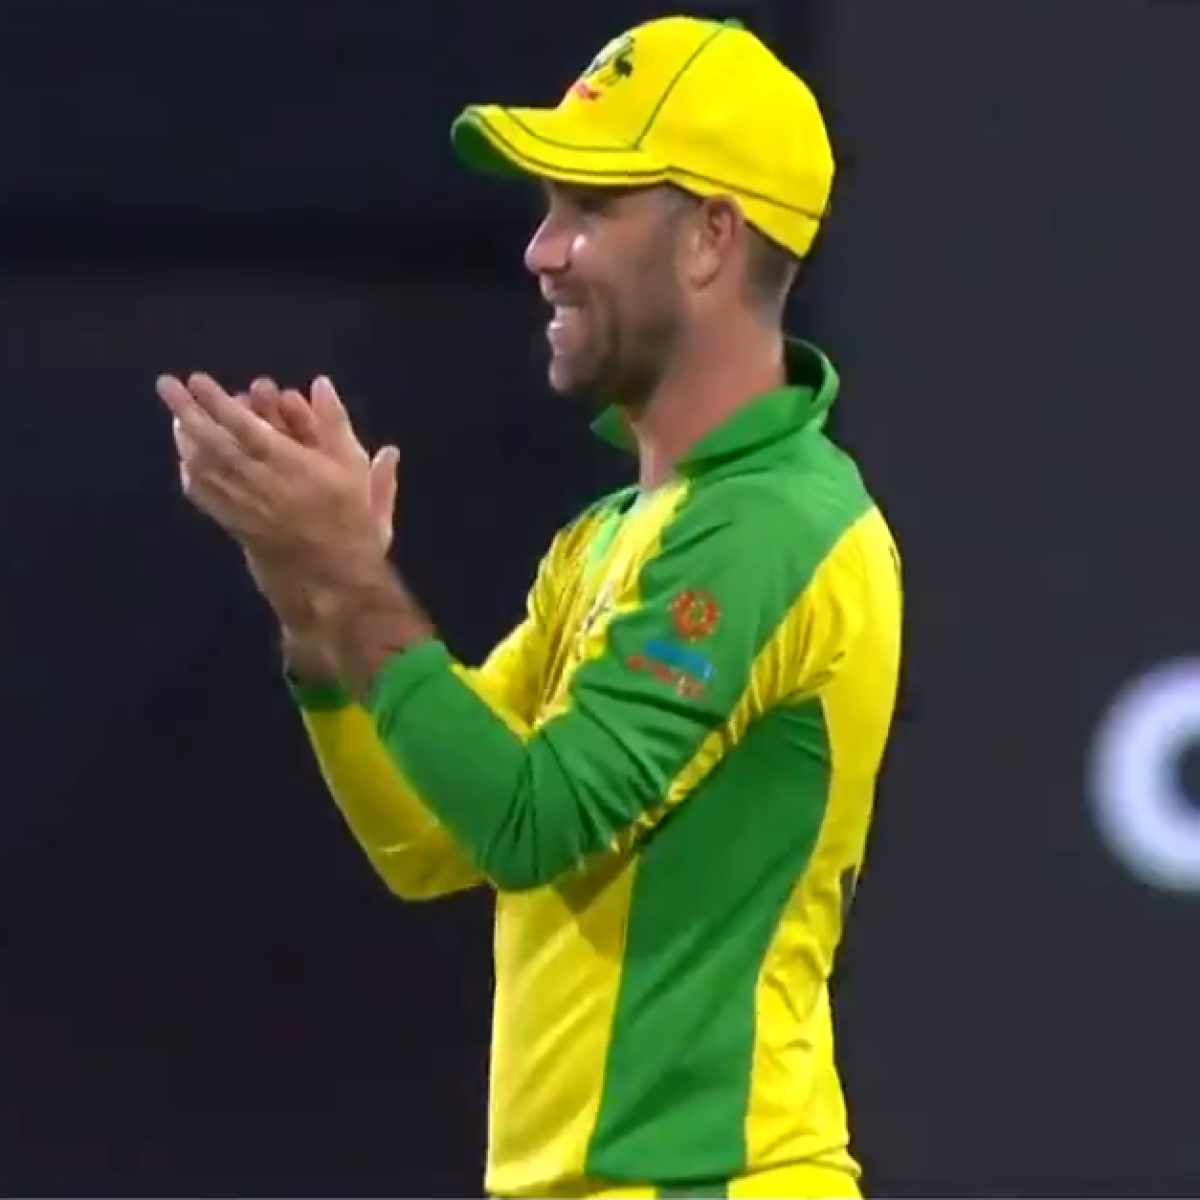 Watch: Glenn Maxwell 'approves' marriage proposal at SCG